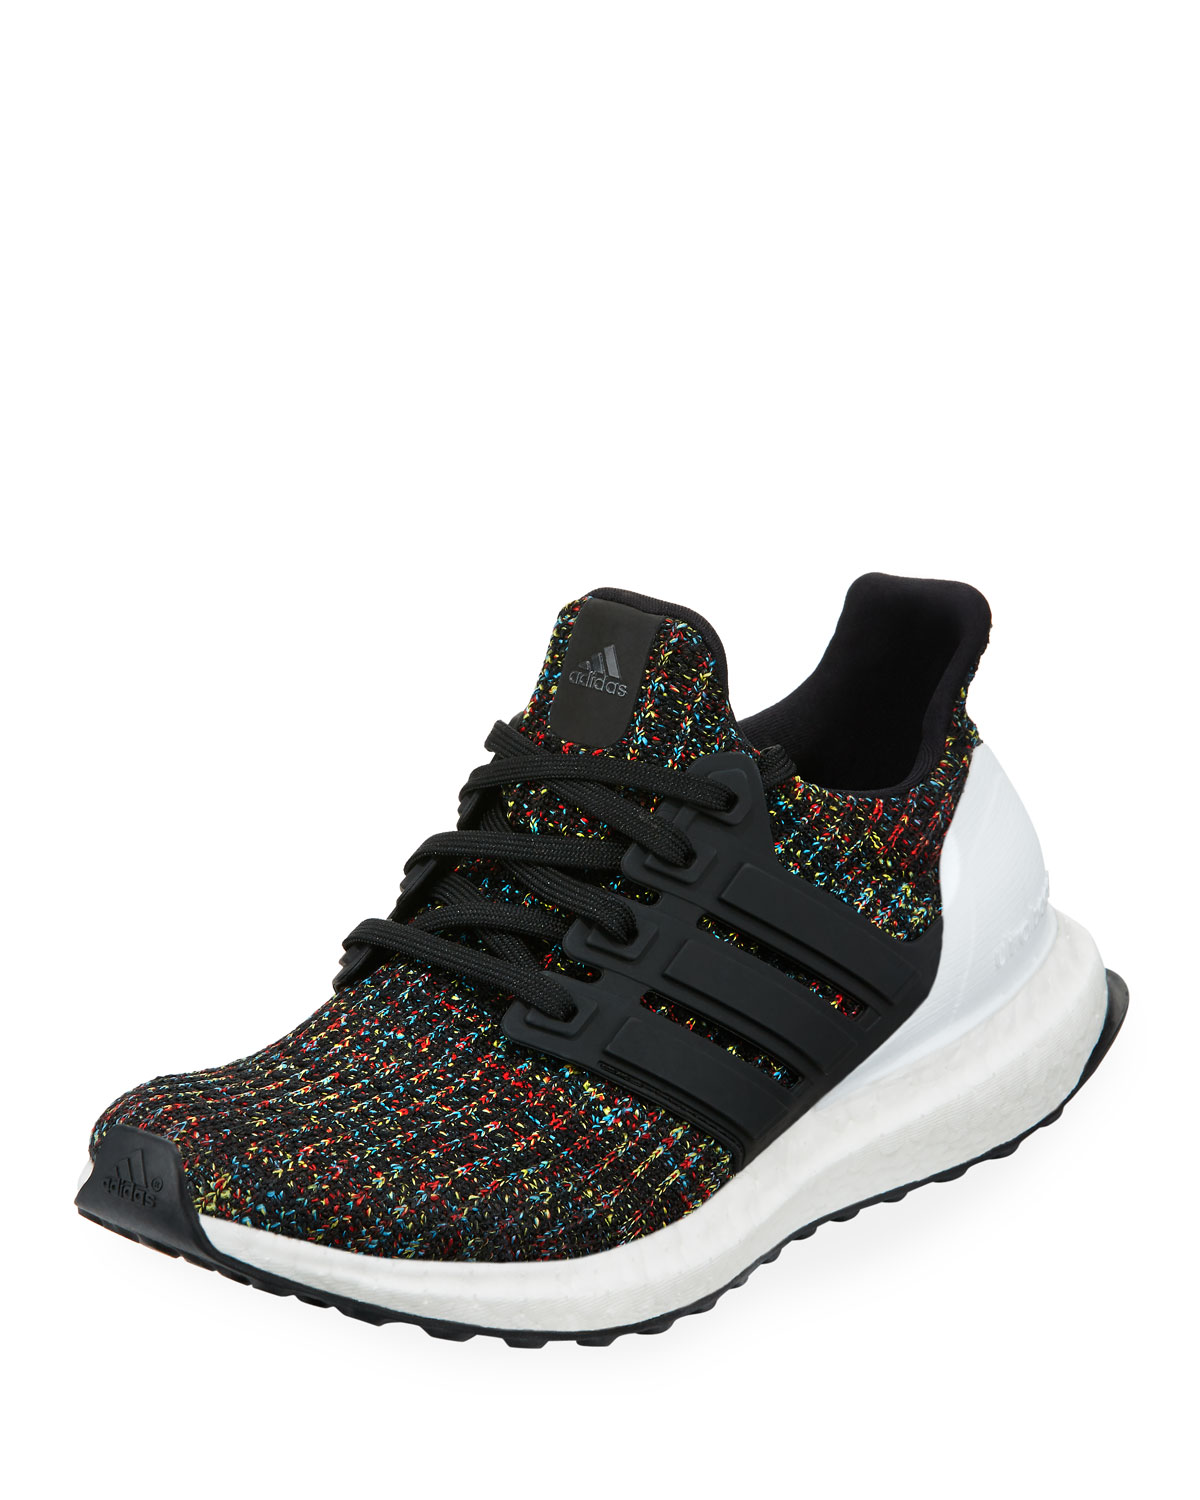 brand new 42dc1 3a8f4 Ultraboost Knit Sneakers, Kids